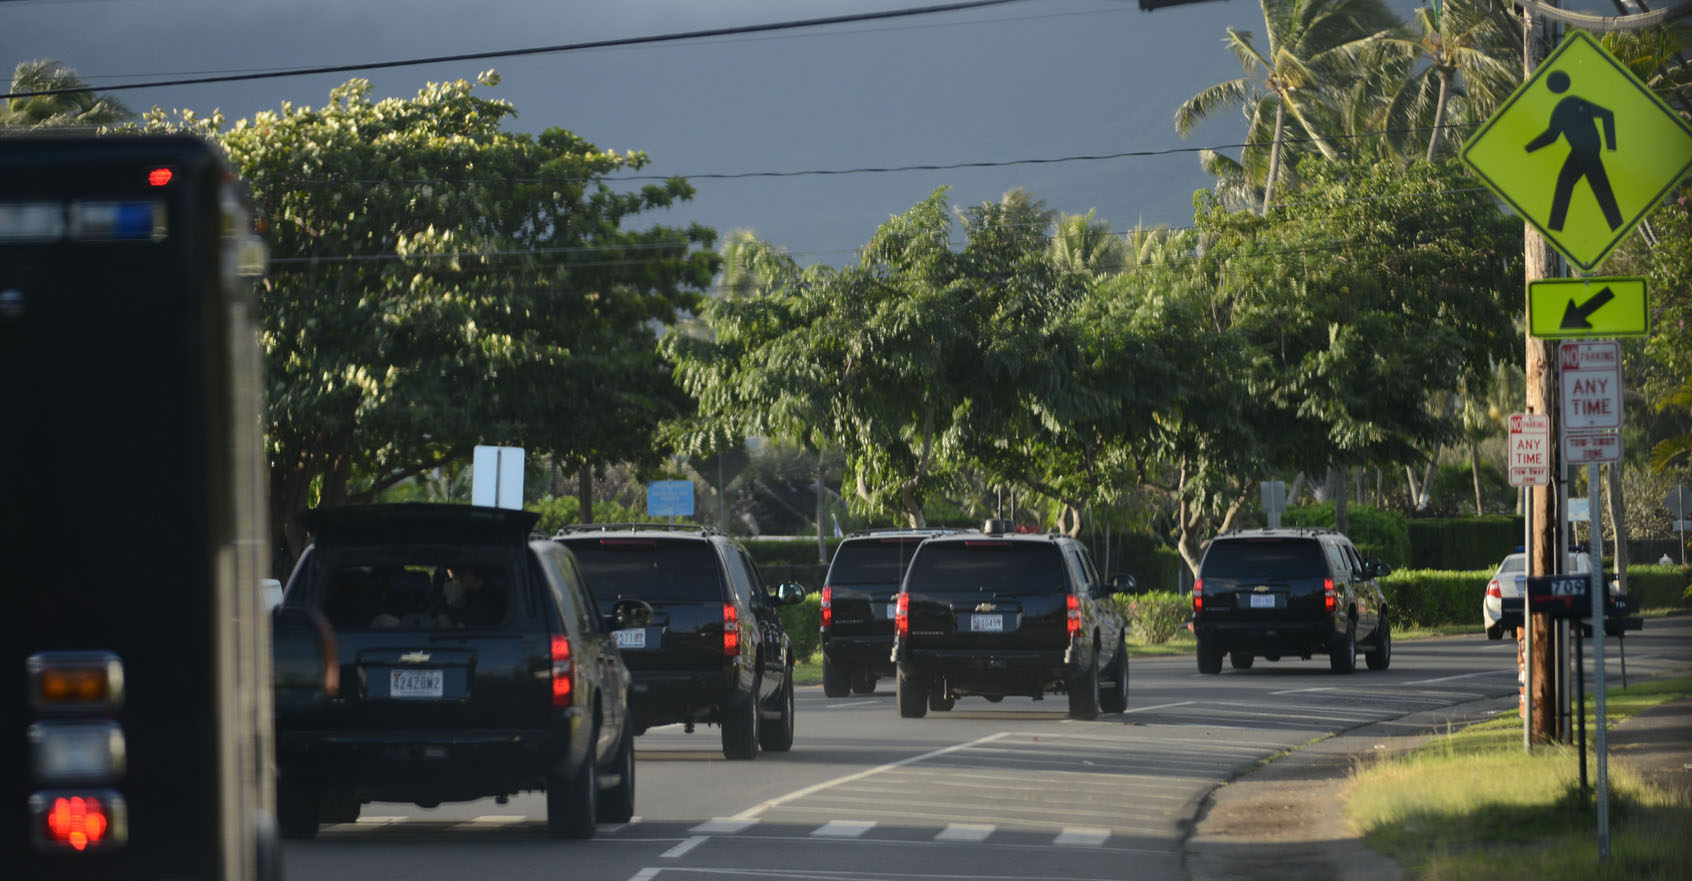 <p>Morning workouts in Kaneohe at Marine Corps Base Hawaii are part of the president&#8217;s routine. After a visit in December 2013, his motorcade cruises back toward his vacation rental in Kailua.</p>